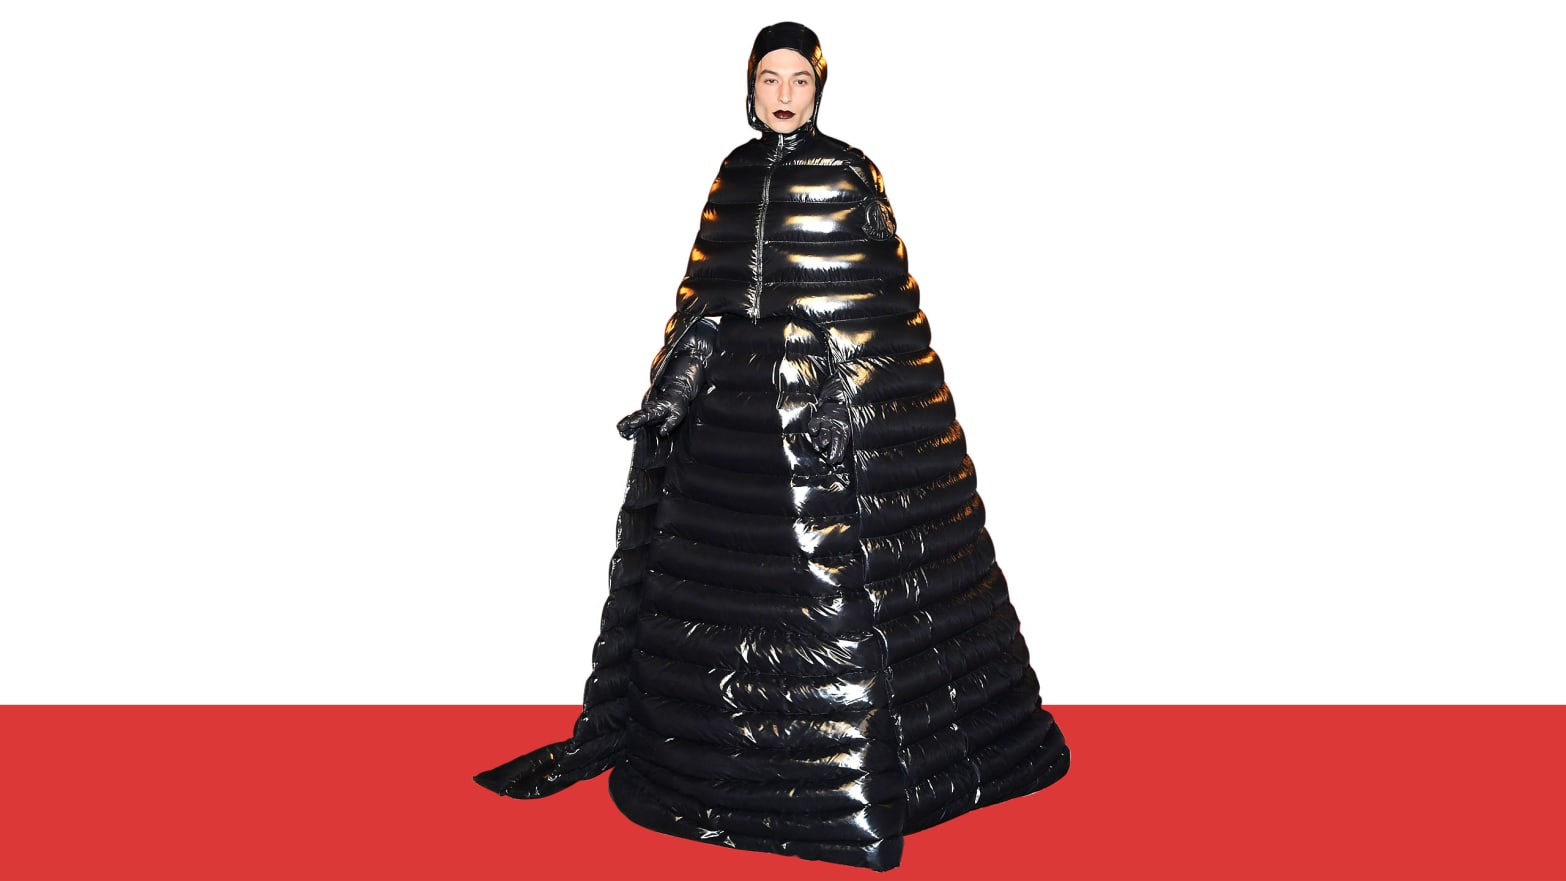 8cc2b94738bf Ezra Miller s Puffer Coat Dress Shows How Exciting Gender-Neutral Clothing  Can Be